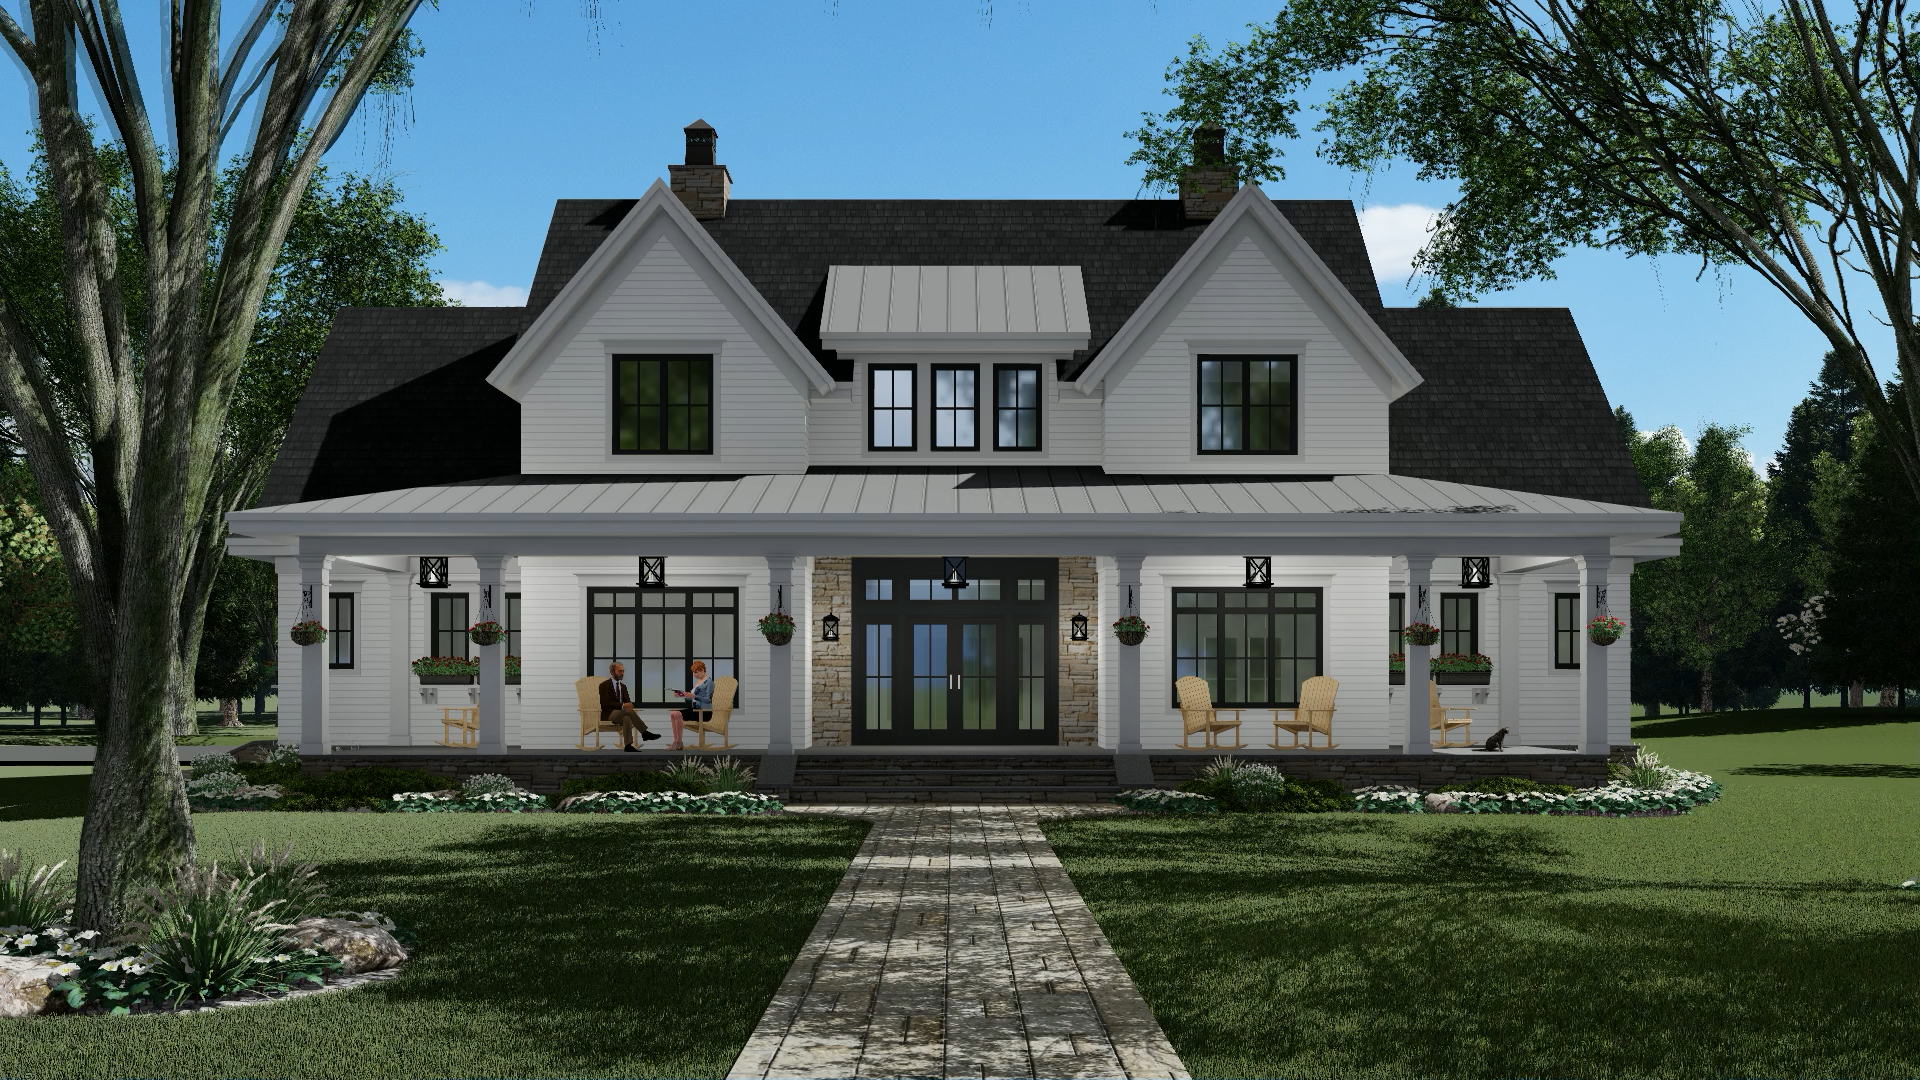 Silverbell Ranch Modern farmhouse plan 2743 sq ft with 4 bedrooms and 4 baths